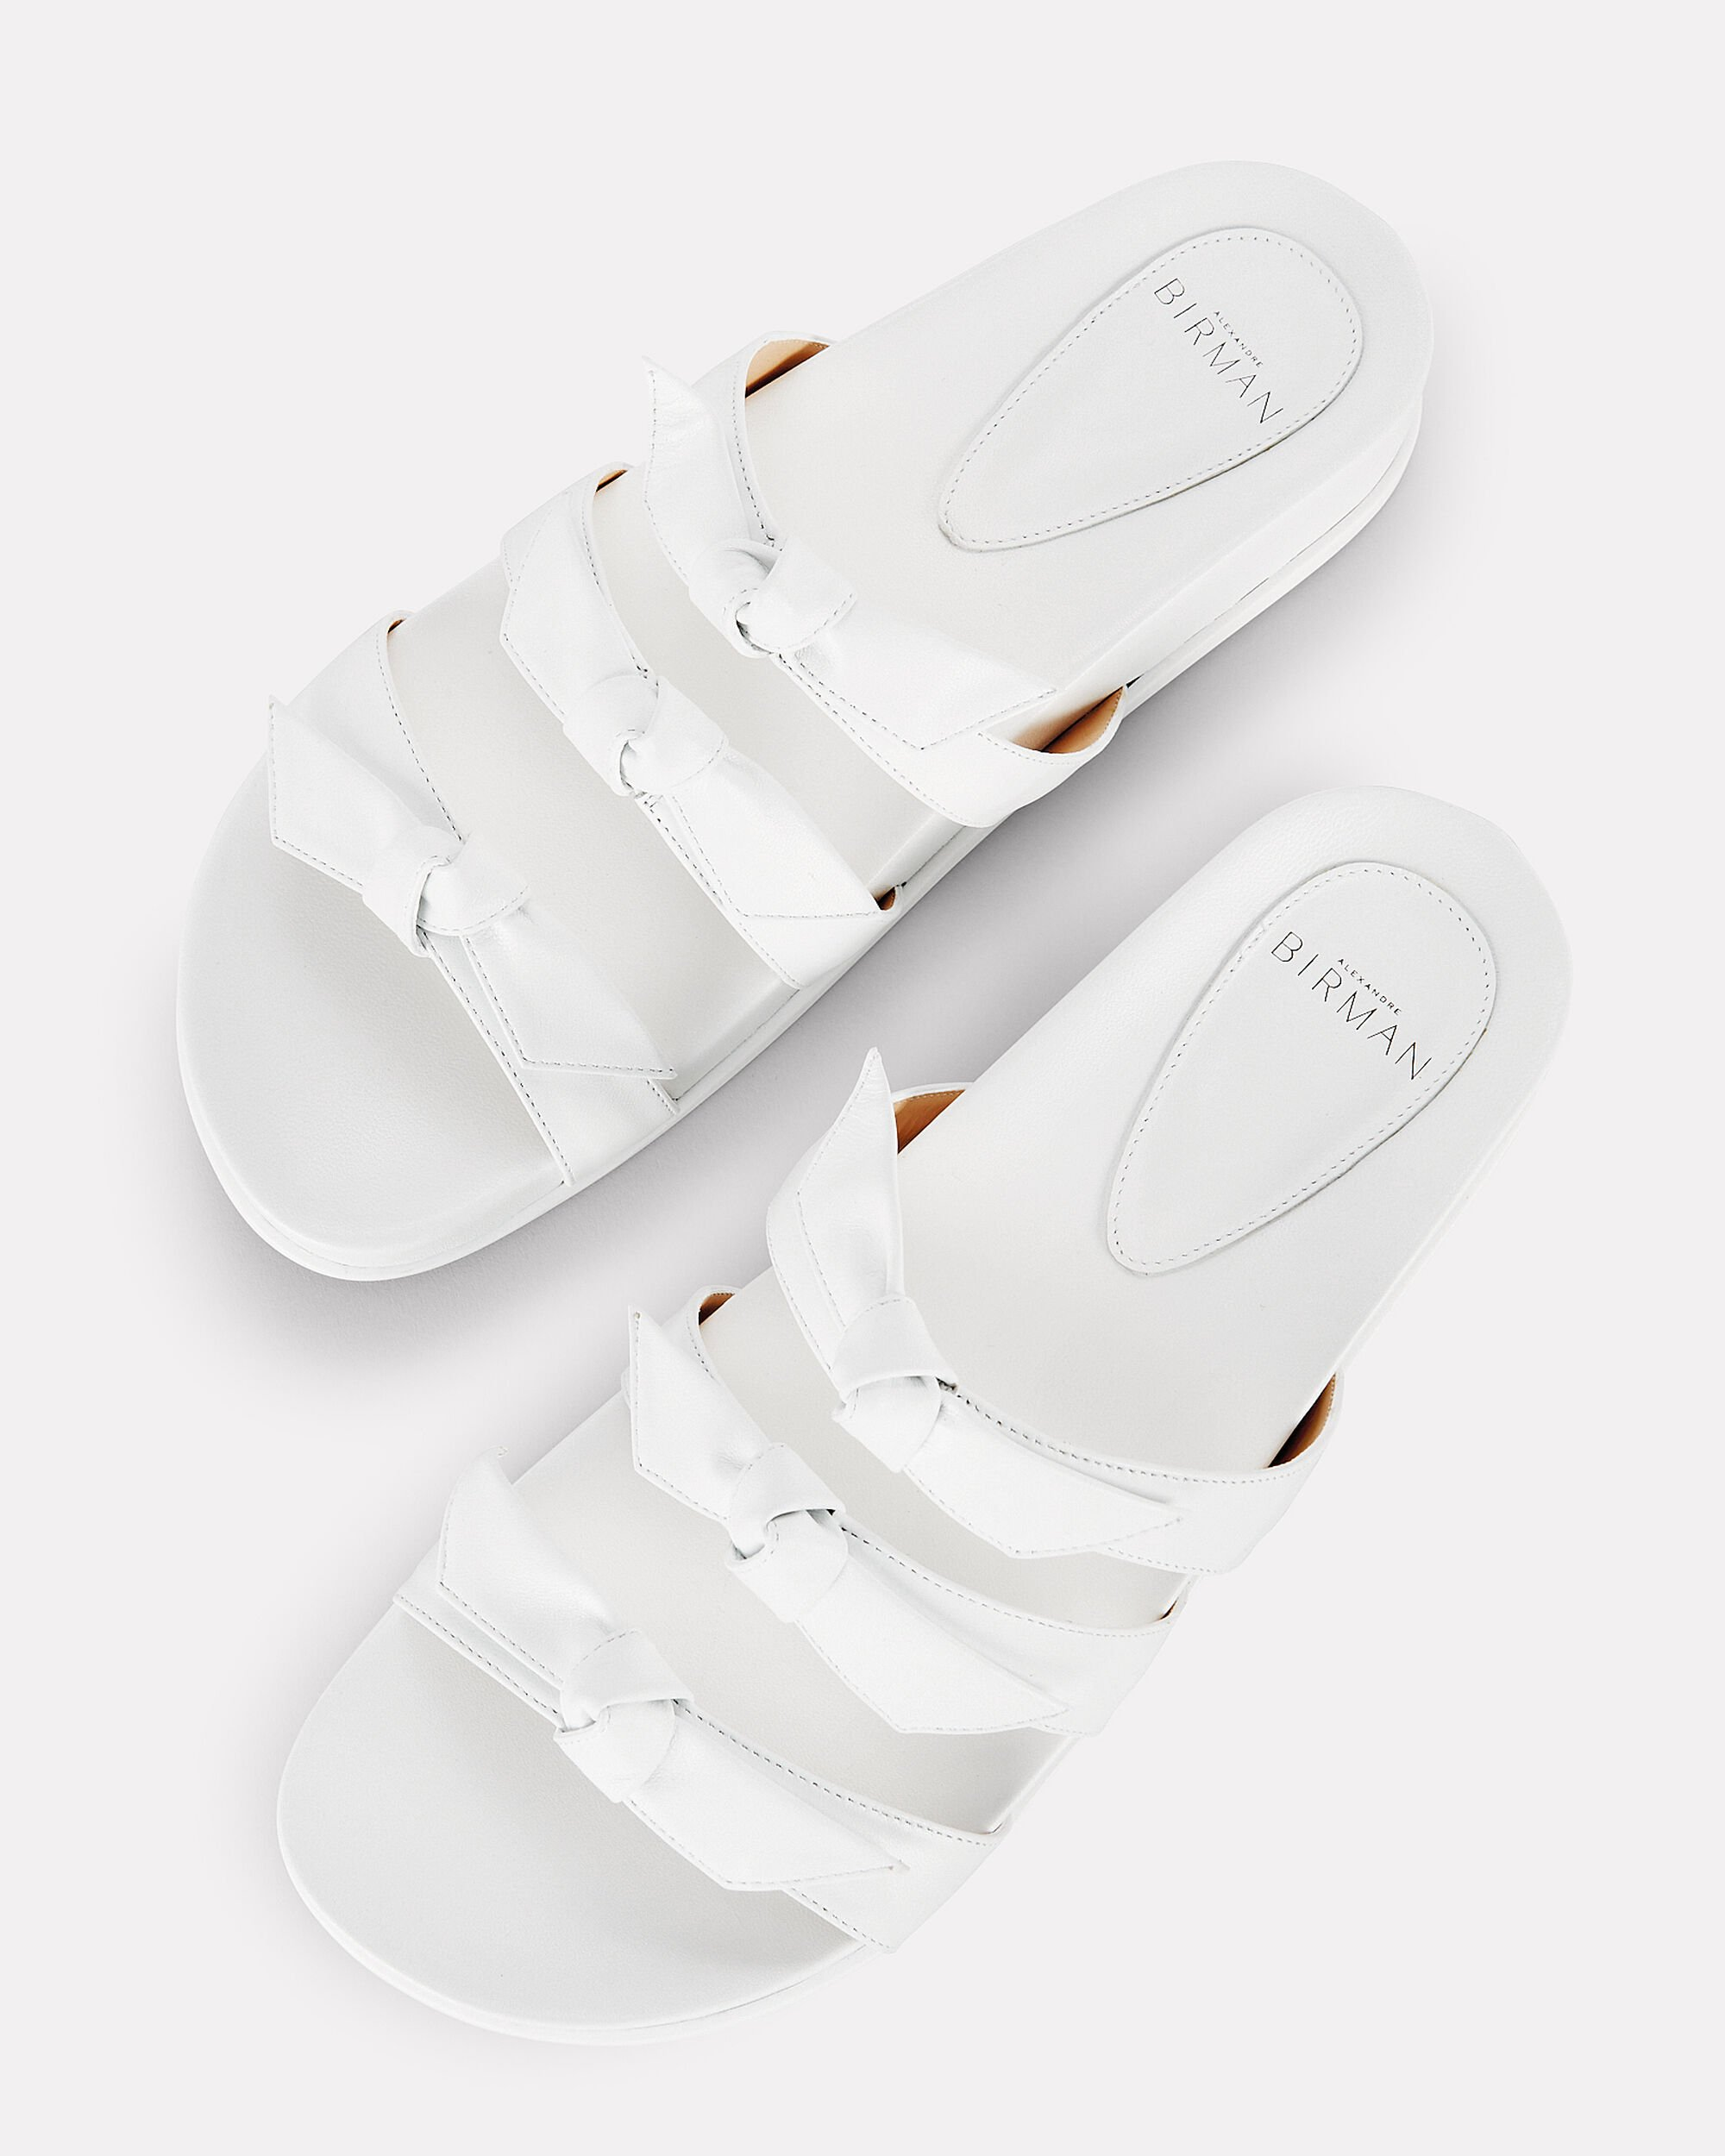 Lolita White Bow Flat Sandals, WHITE, hi-res